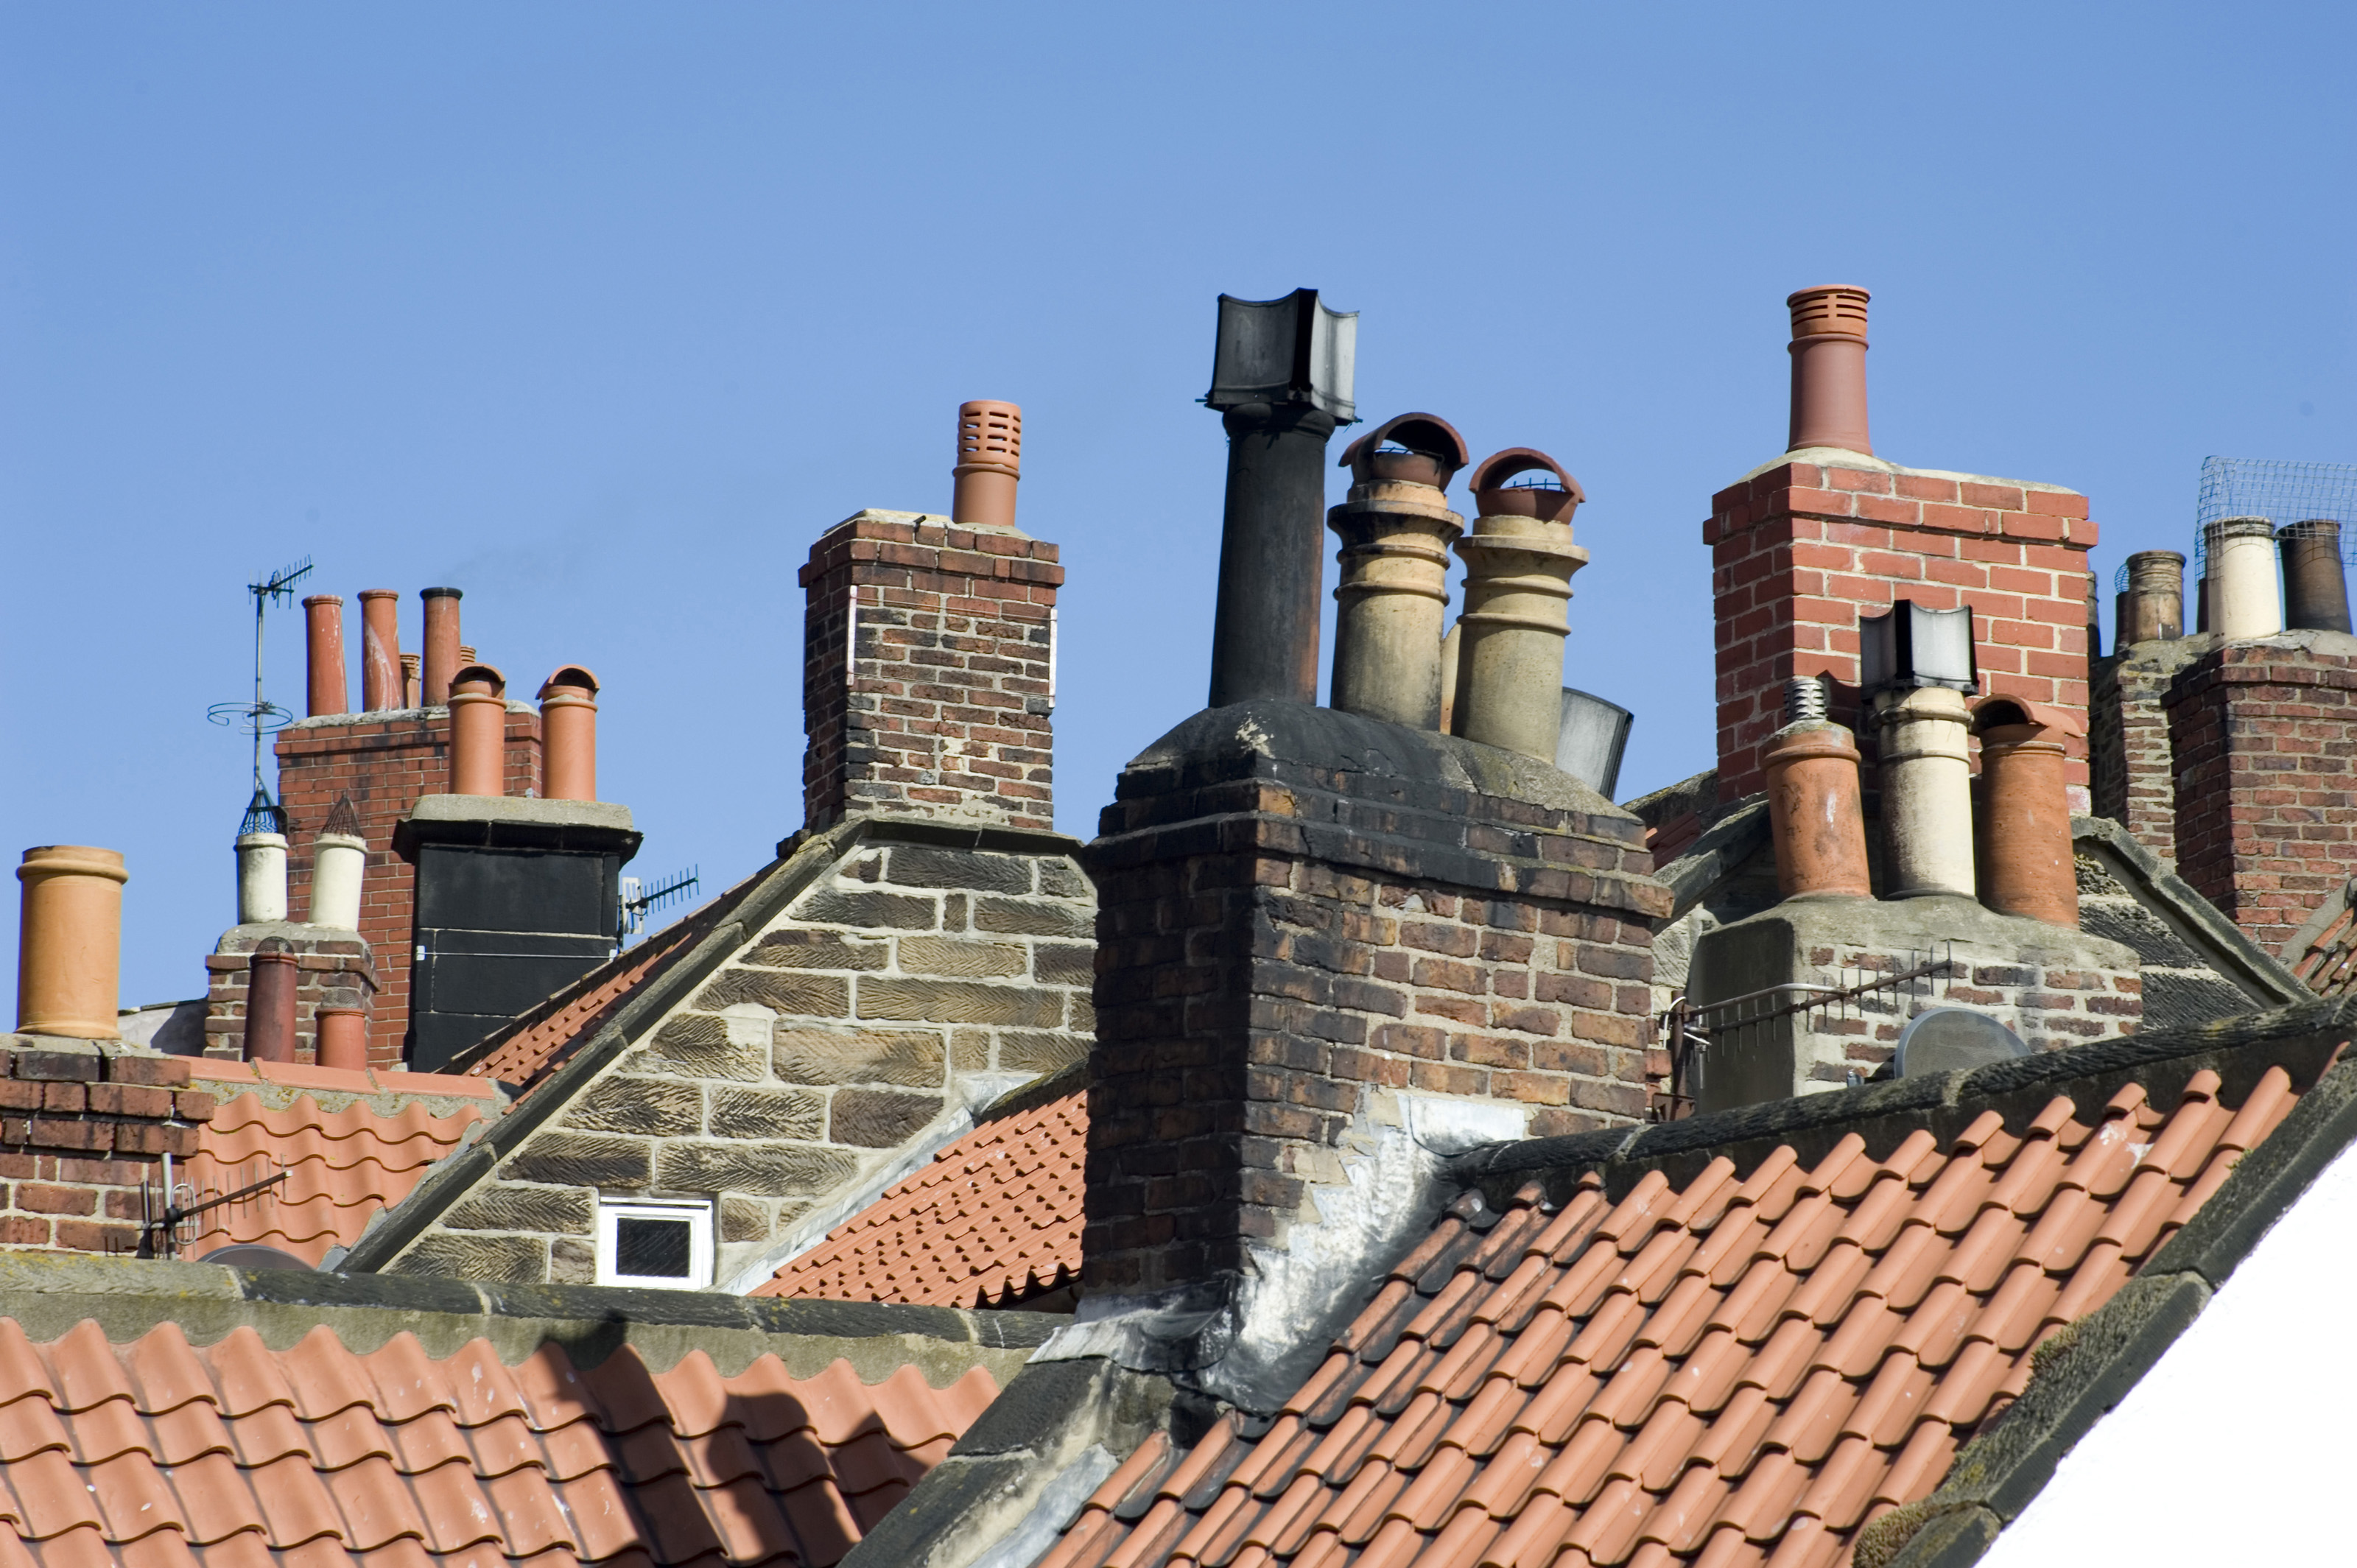 Image Gallery Rooftops